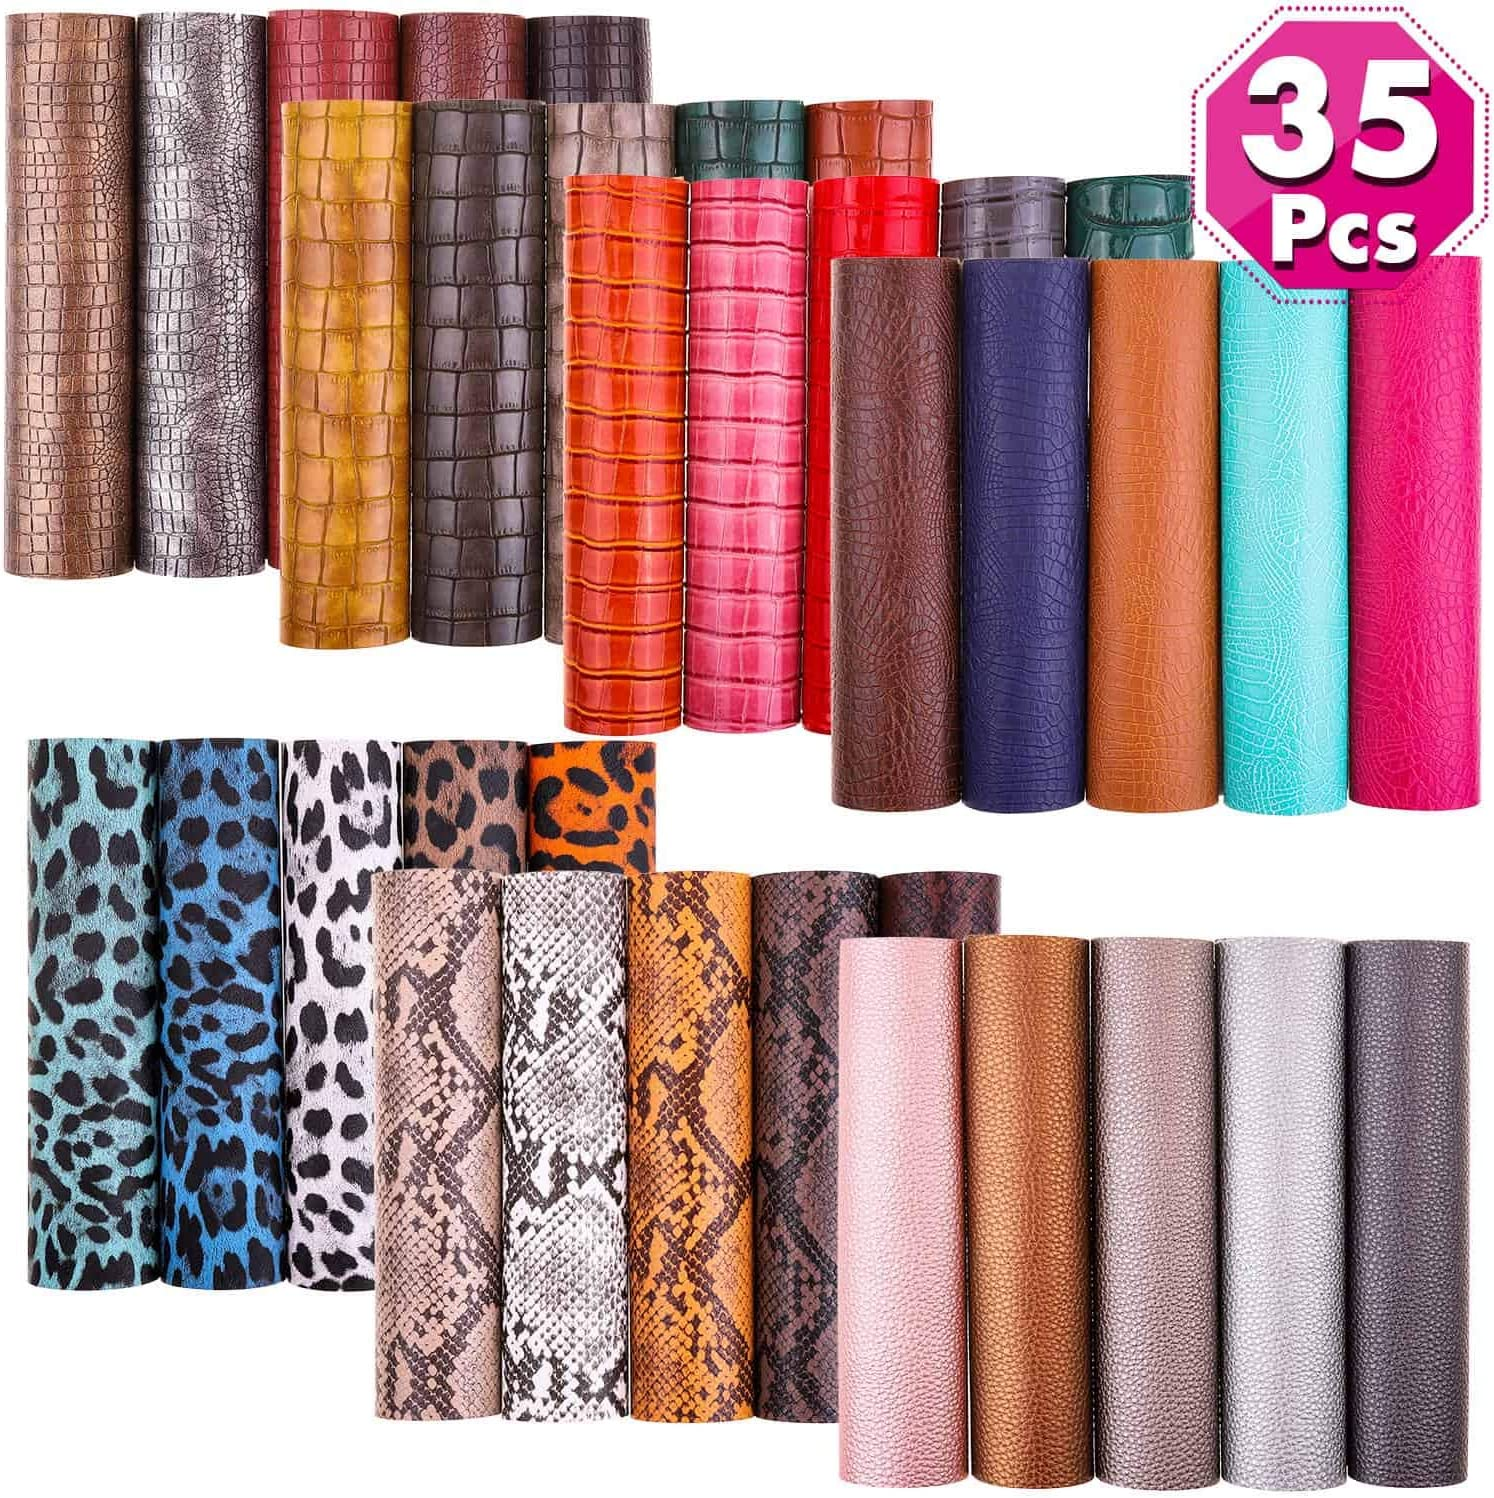 35 Pcs Faux Leather Sheets for Earrings Making, Cridoz 7 Styles Faux Leather Fabric Sheet for Earrings Making, Hair Bow and Crafts, 6.3 x 8.3 Inches